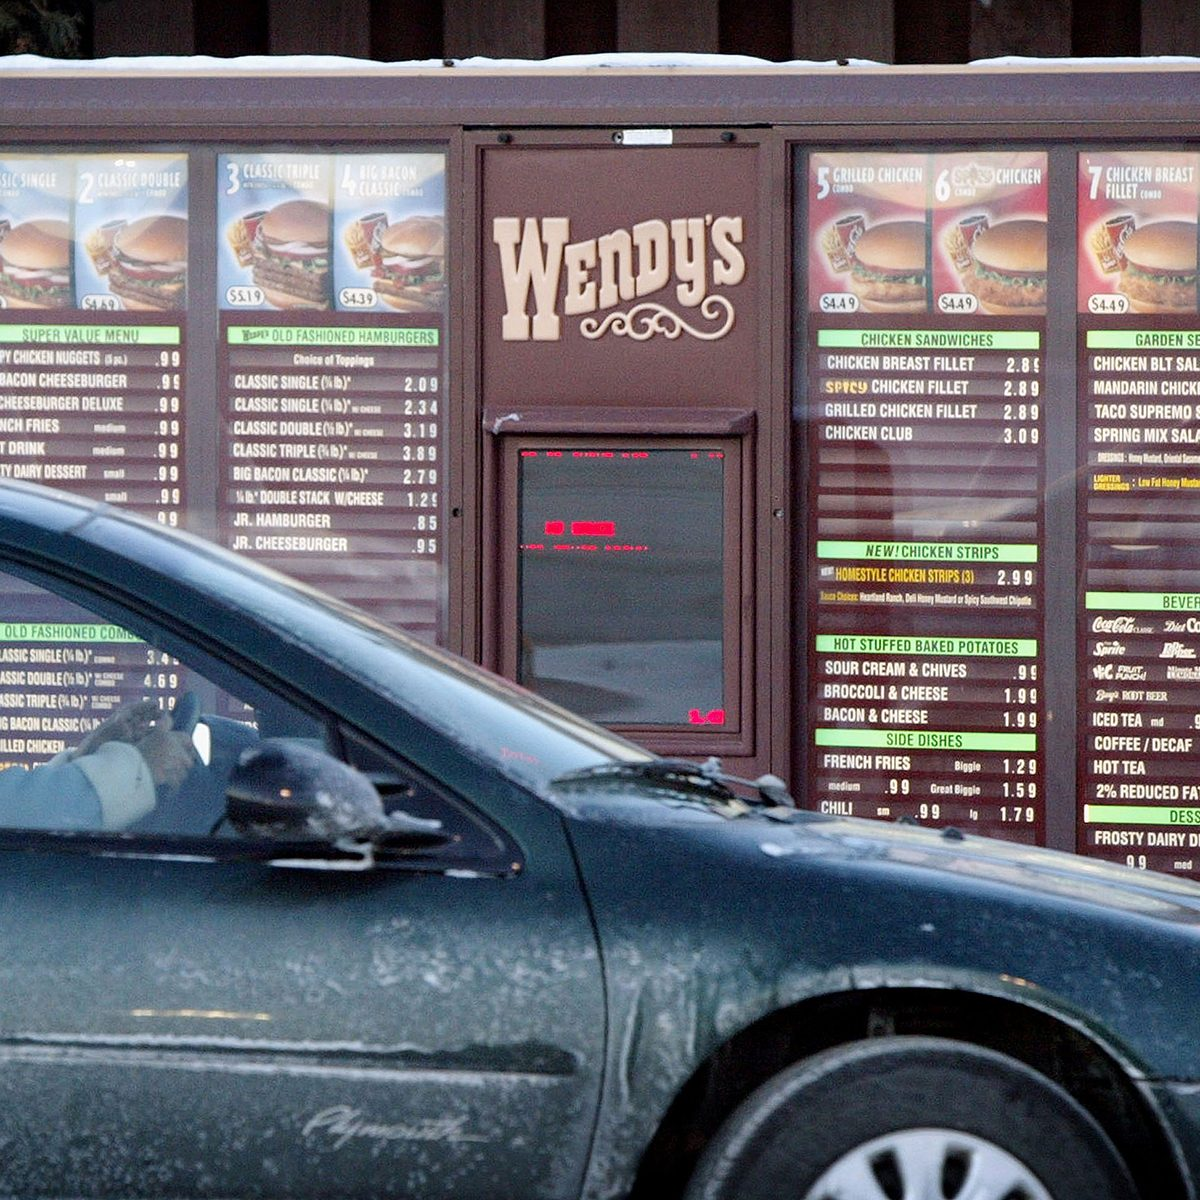 wendy's baked potato CHICAGO, IL - JANUARY 30: 30: A customer orders from the drive-up menu at a Wendy's restaurant January 30, 2004 in Chicago, Illinois. Wendy's, the nation's third largest hamburger chain, announced today a sharp increase in fourth- quarter profits. (Photo by Scott Olson/Getty Images)